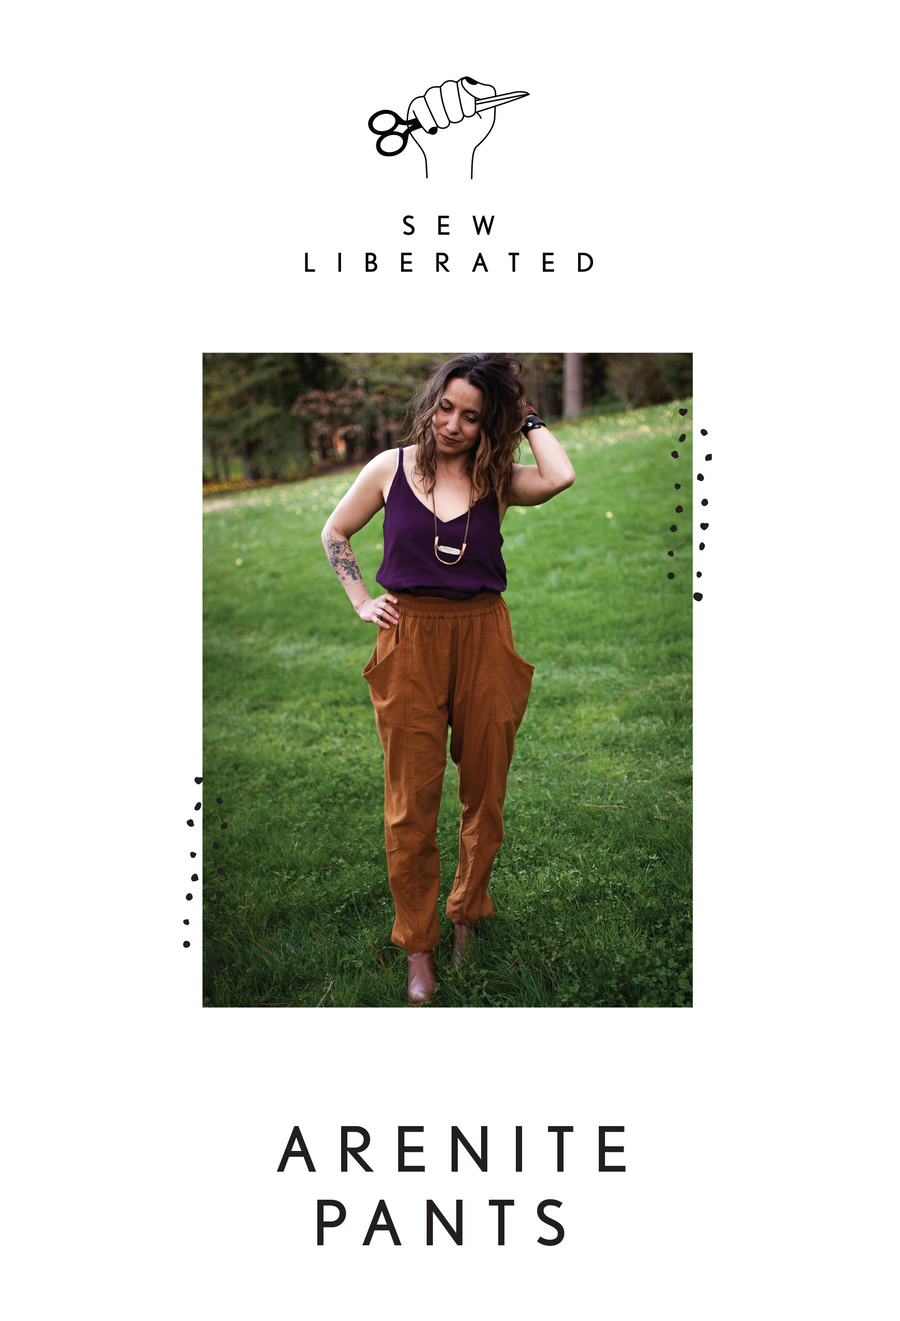 Sew Liberated - Arenite Pants